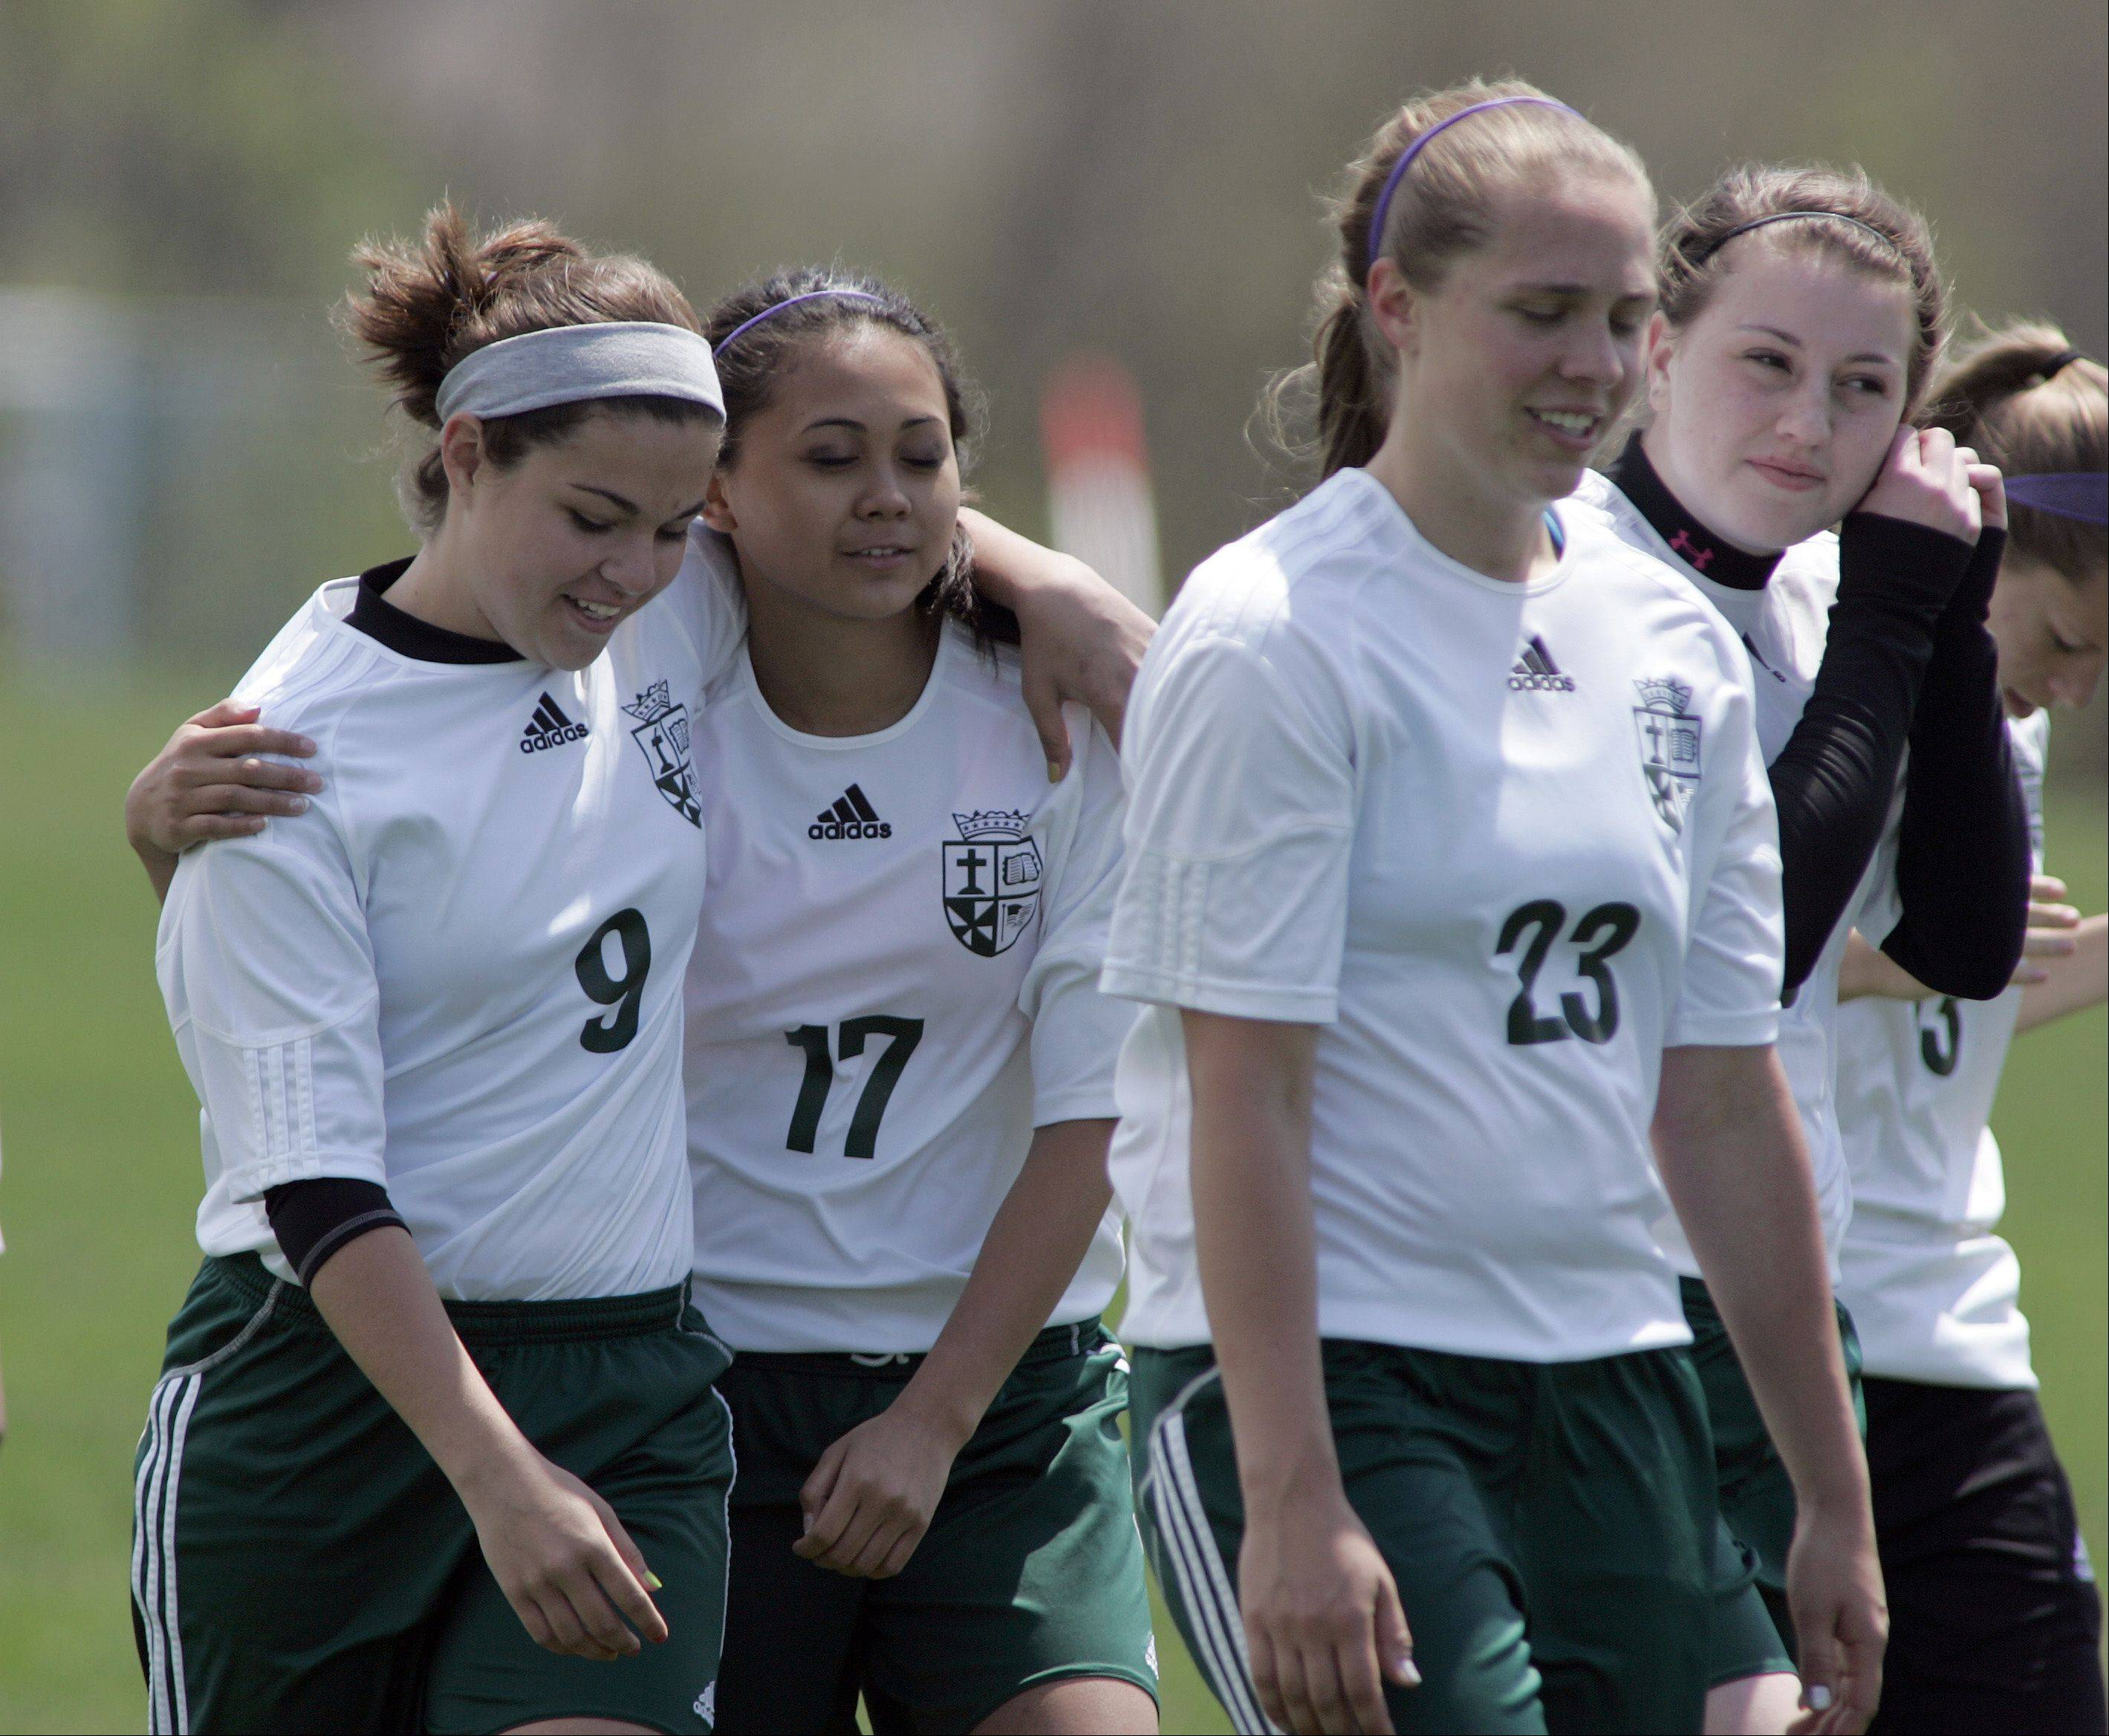 St. Edward's girls soccer team returns to the sideline after beating Westminster Christian in the Class 1A Westminster regional final Saturday. Alyssa Saunders (9) and Stephanie Manghas (17) celebrate in the middle.